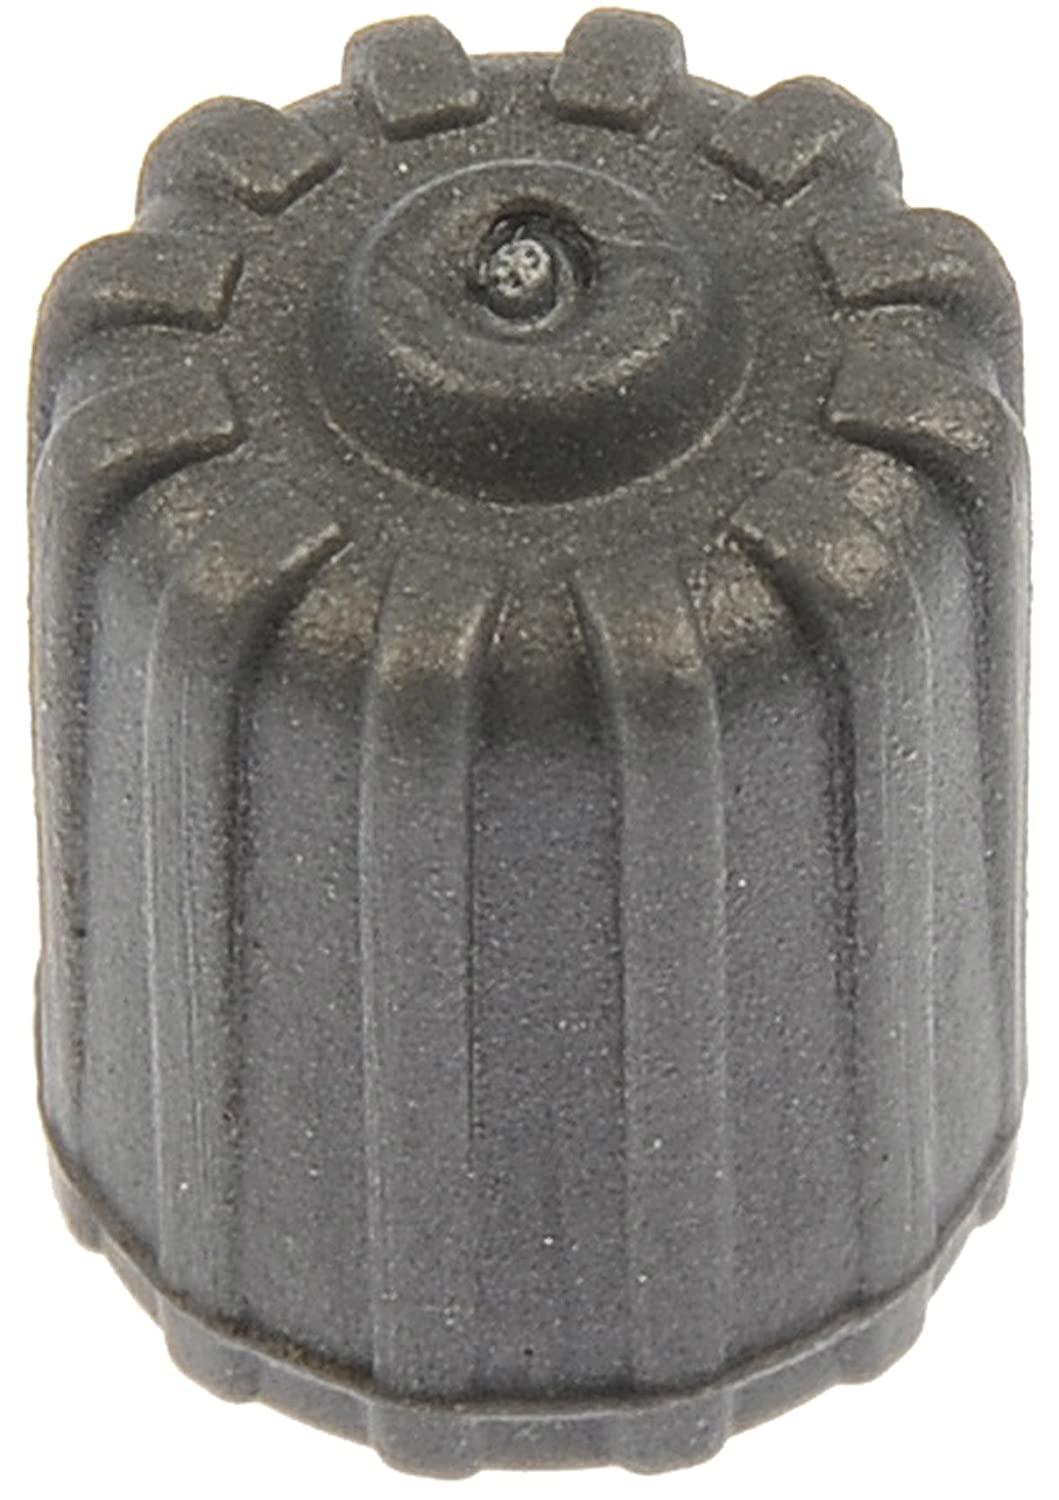 Dorman 609-130 TPMS Grey Plastic Sealing Valve Cap, Pack of 50 Dorman - OE Solutions